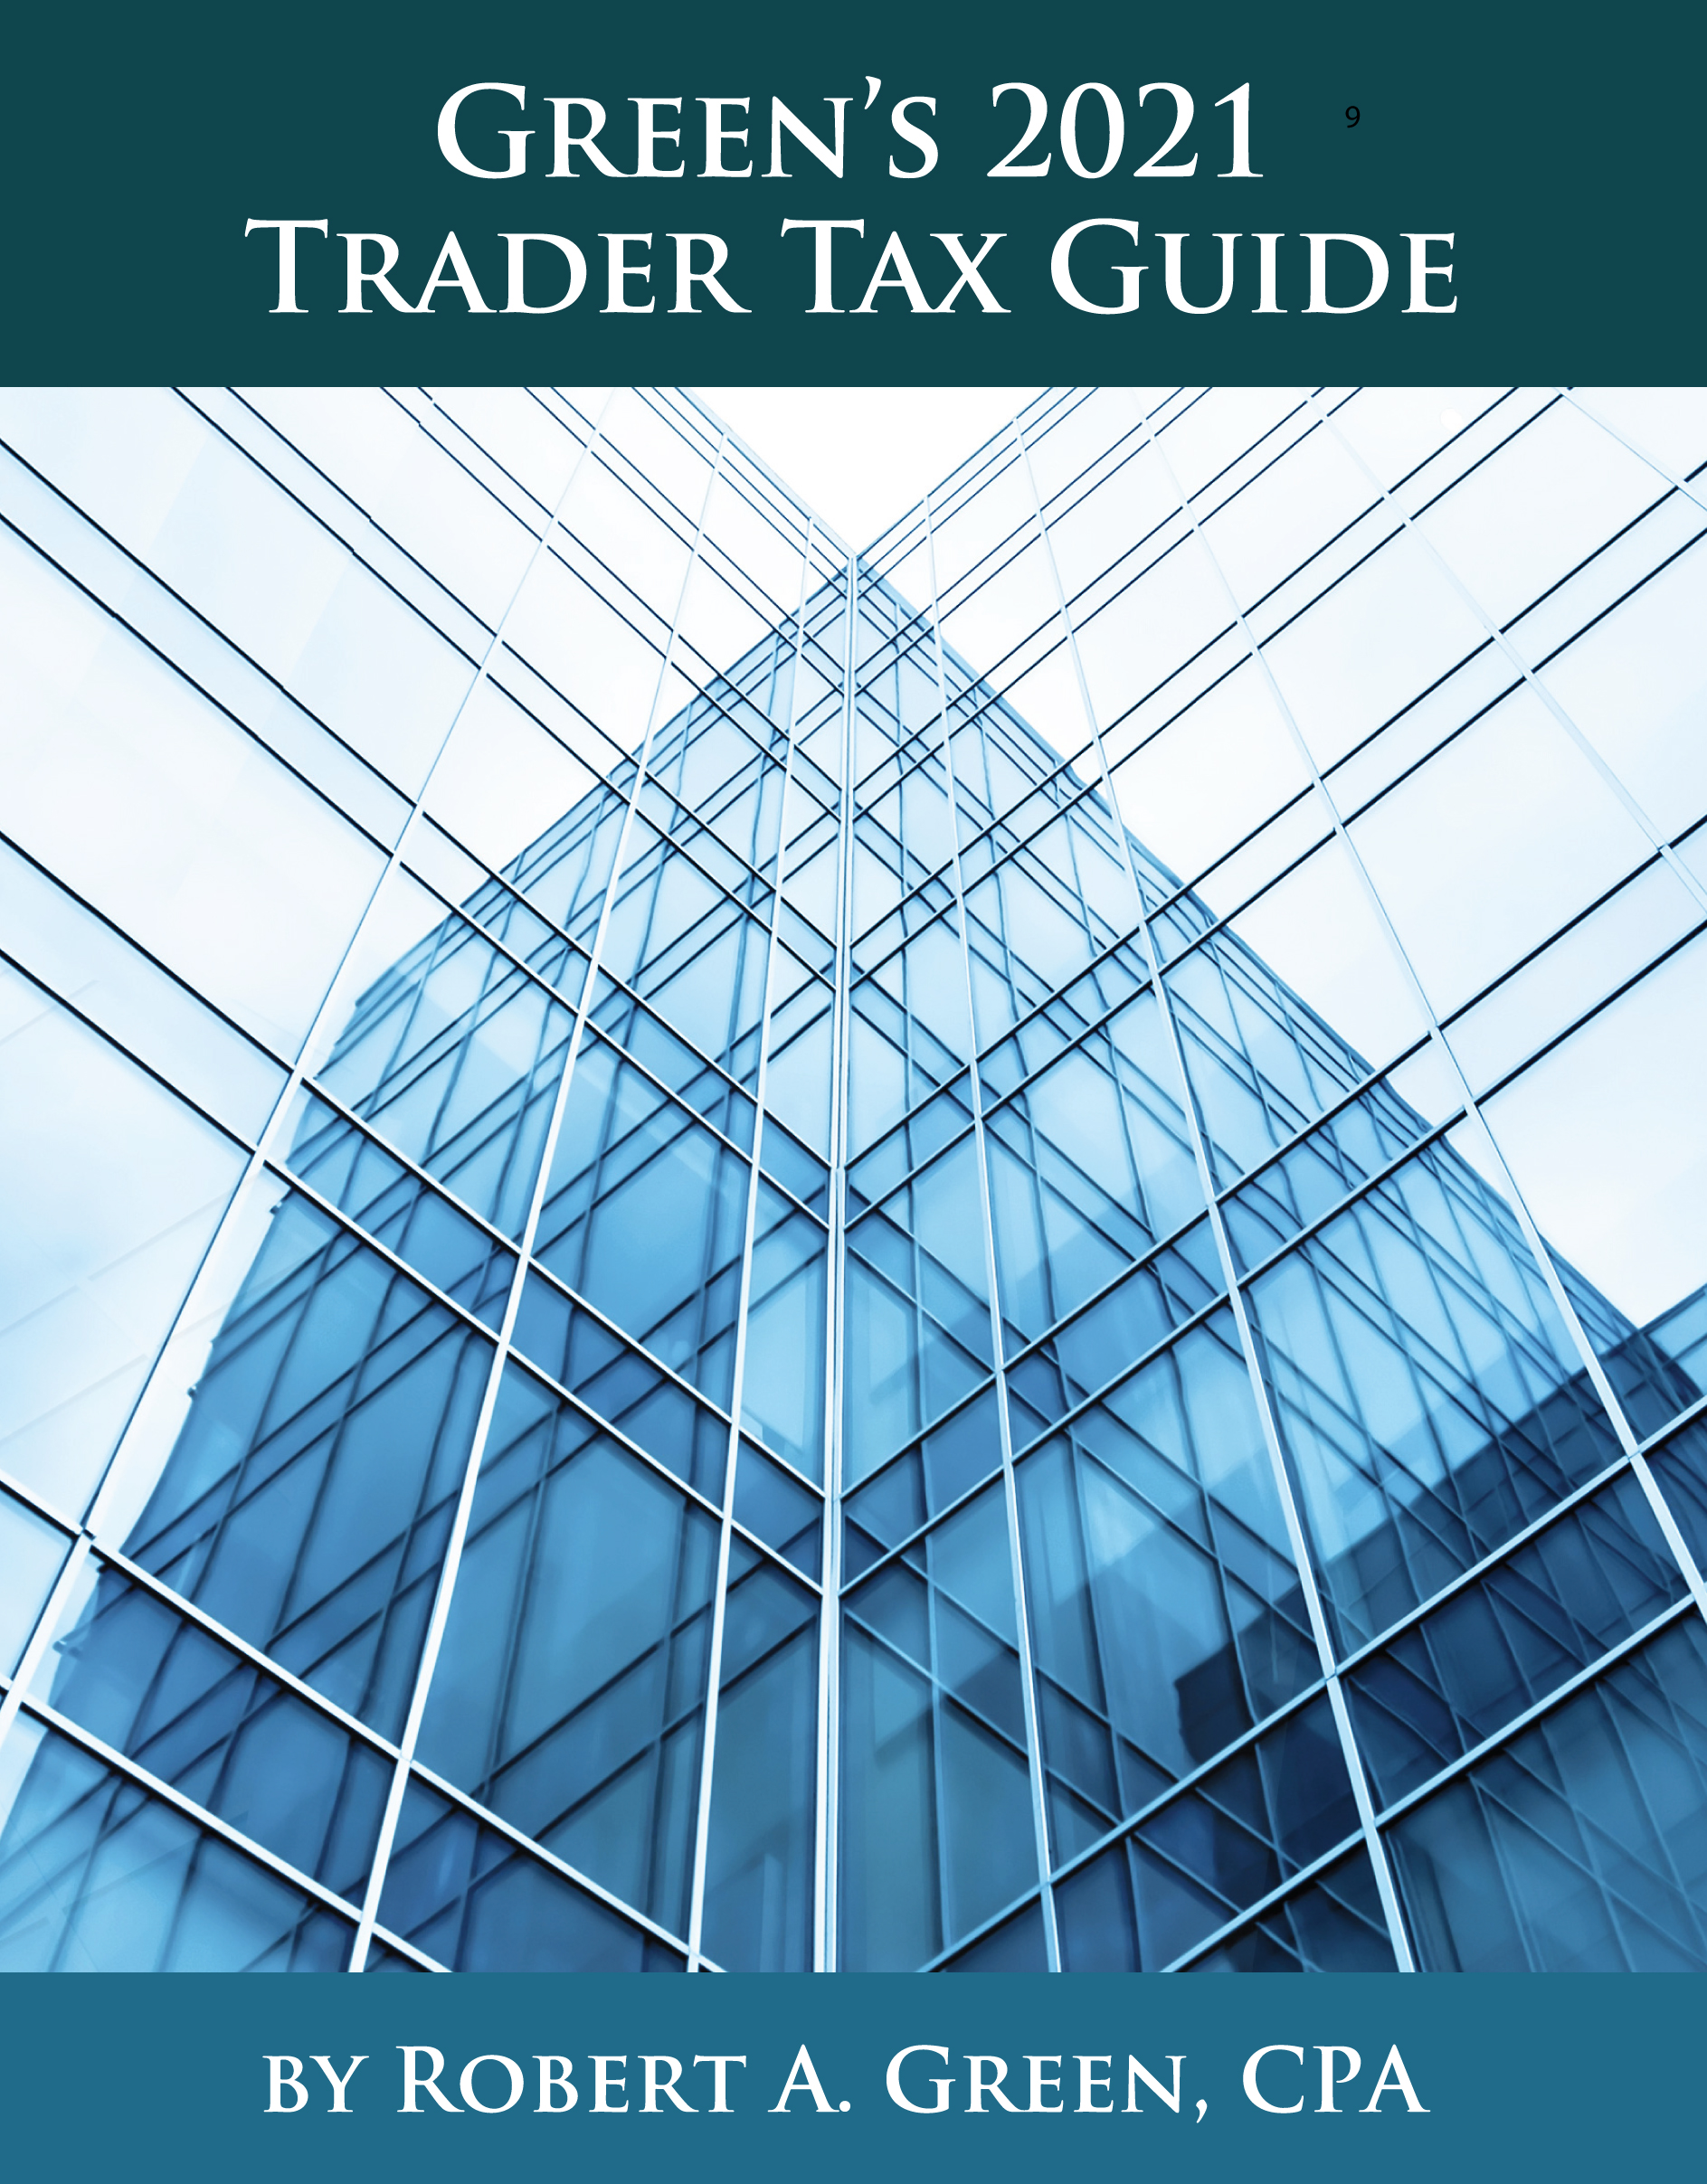 Green's 2021 Trader Tax Guide